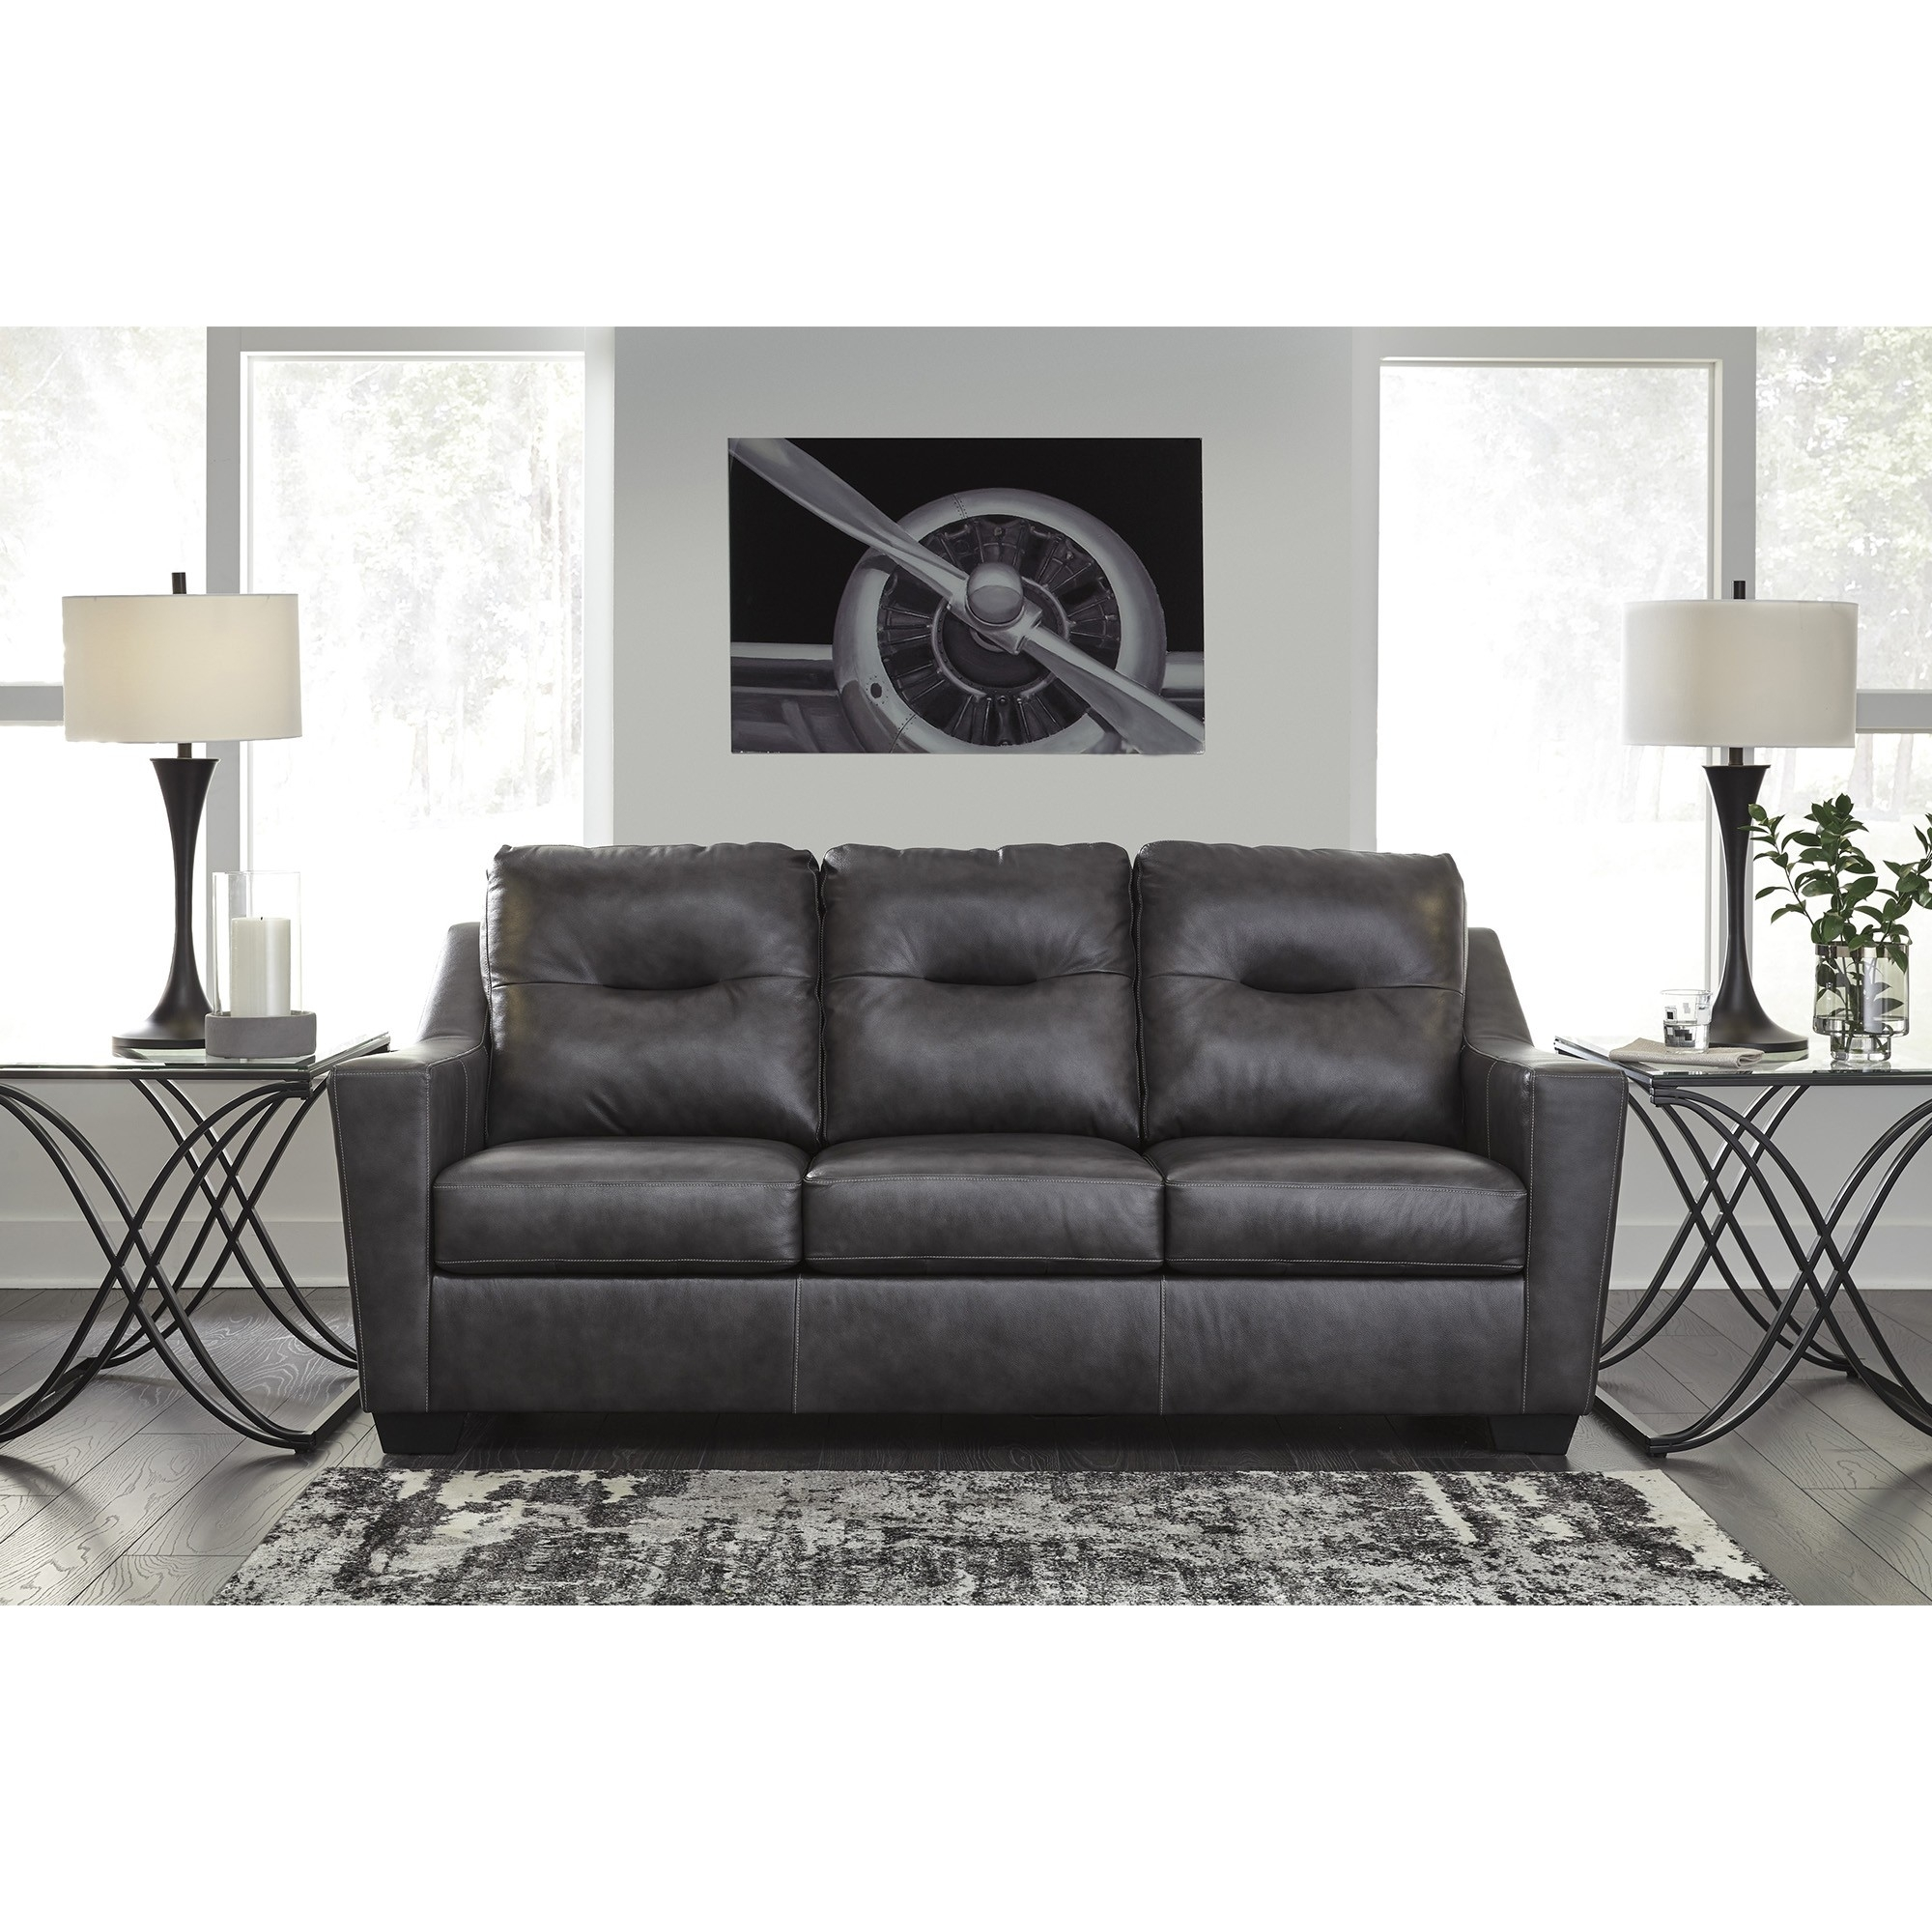 Kensbridge Sofa   Charcoal | Tepperman's For Teppermans Sectional Sofas (Photo 7 of 10)